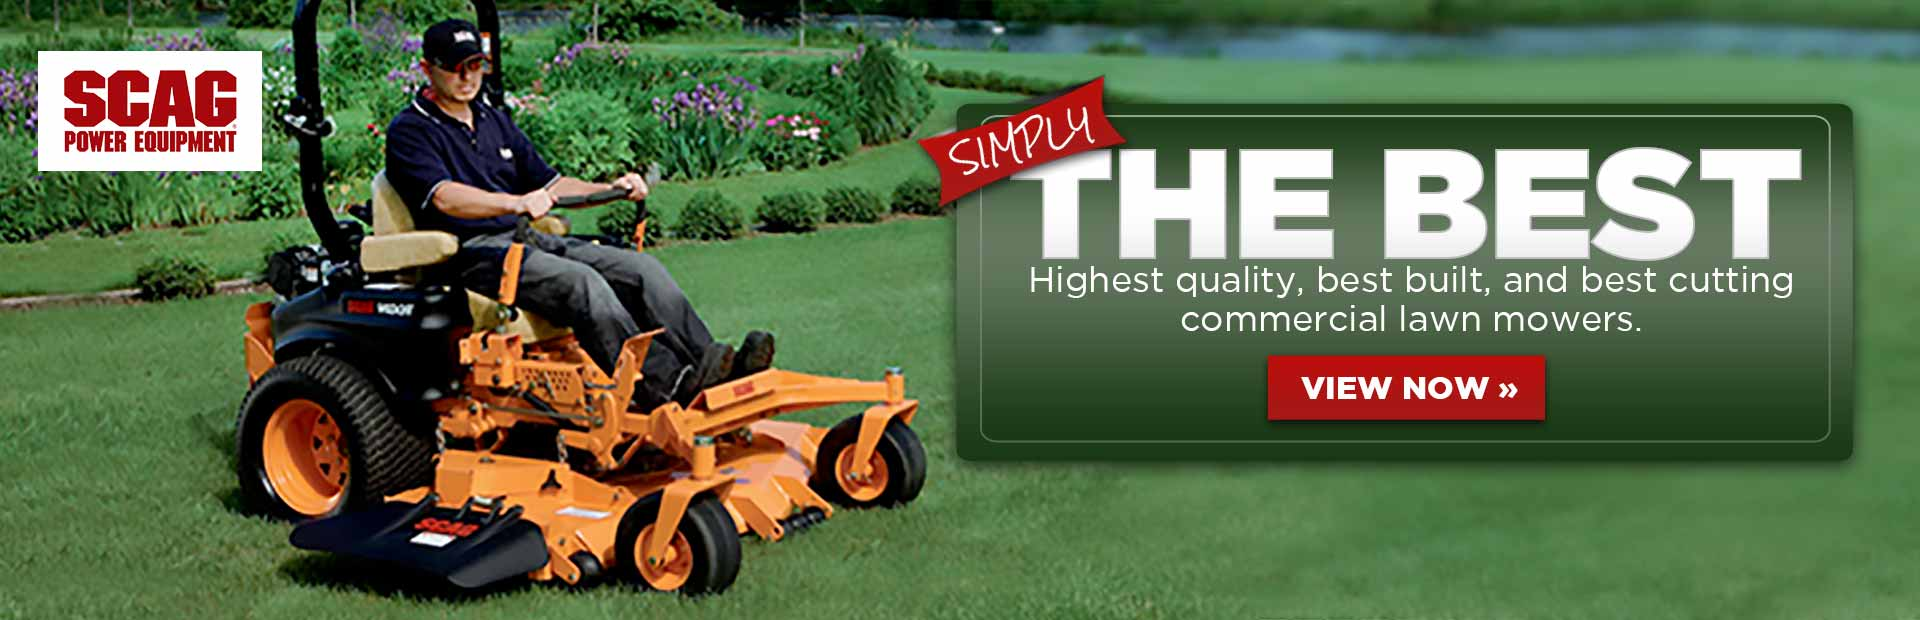 Scag has the highest quality, best built, and best cutting commercial lawn mowers. Click here to view the models online.